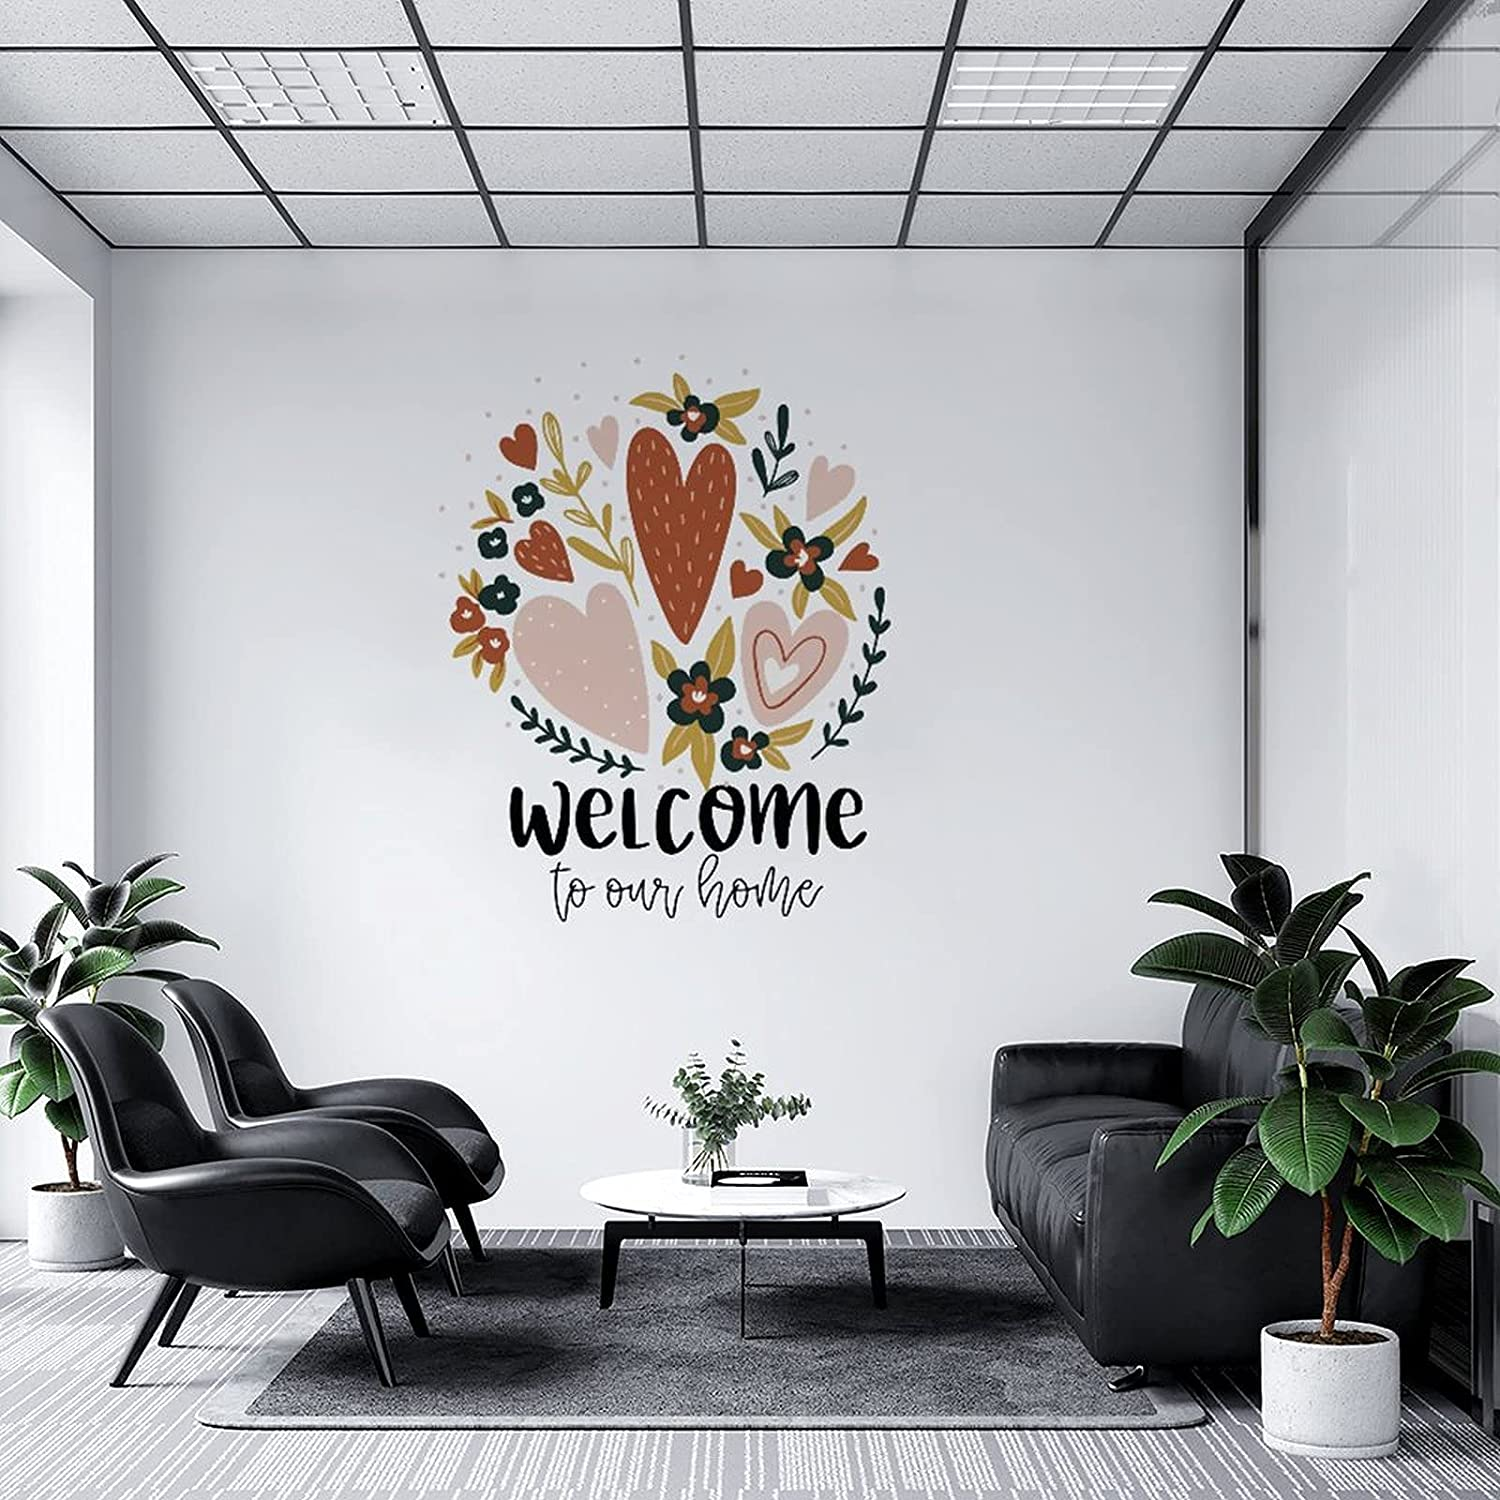 Wall Decal Welcome Max 69% OFF to Our Nursery Easy-to-use Bedroo Classroom Kitchen Home